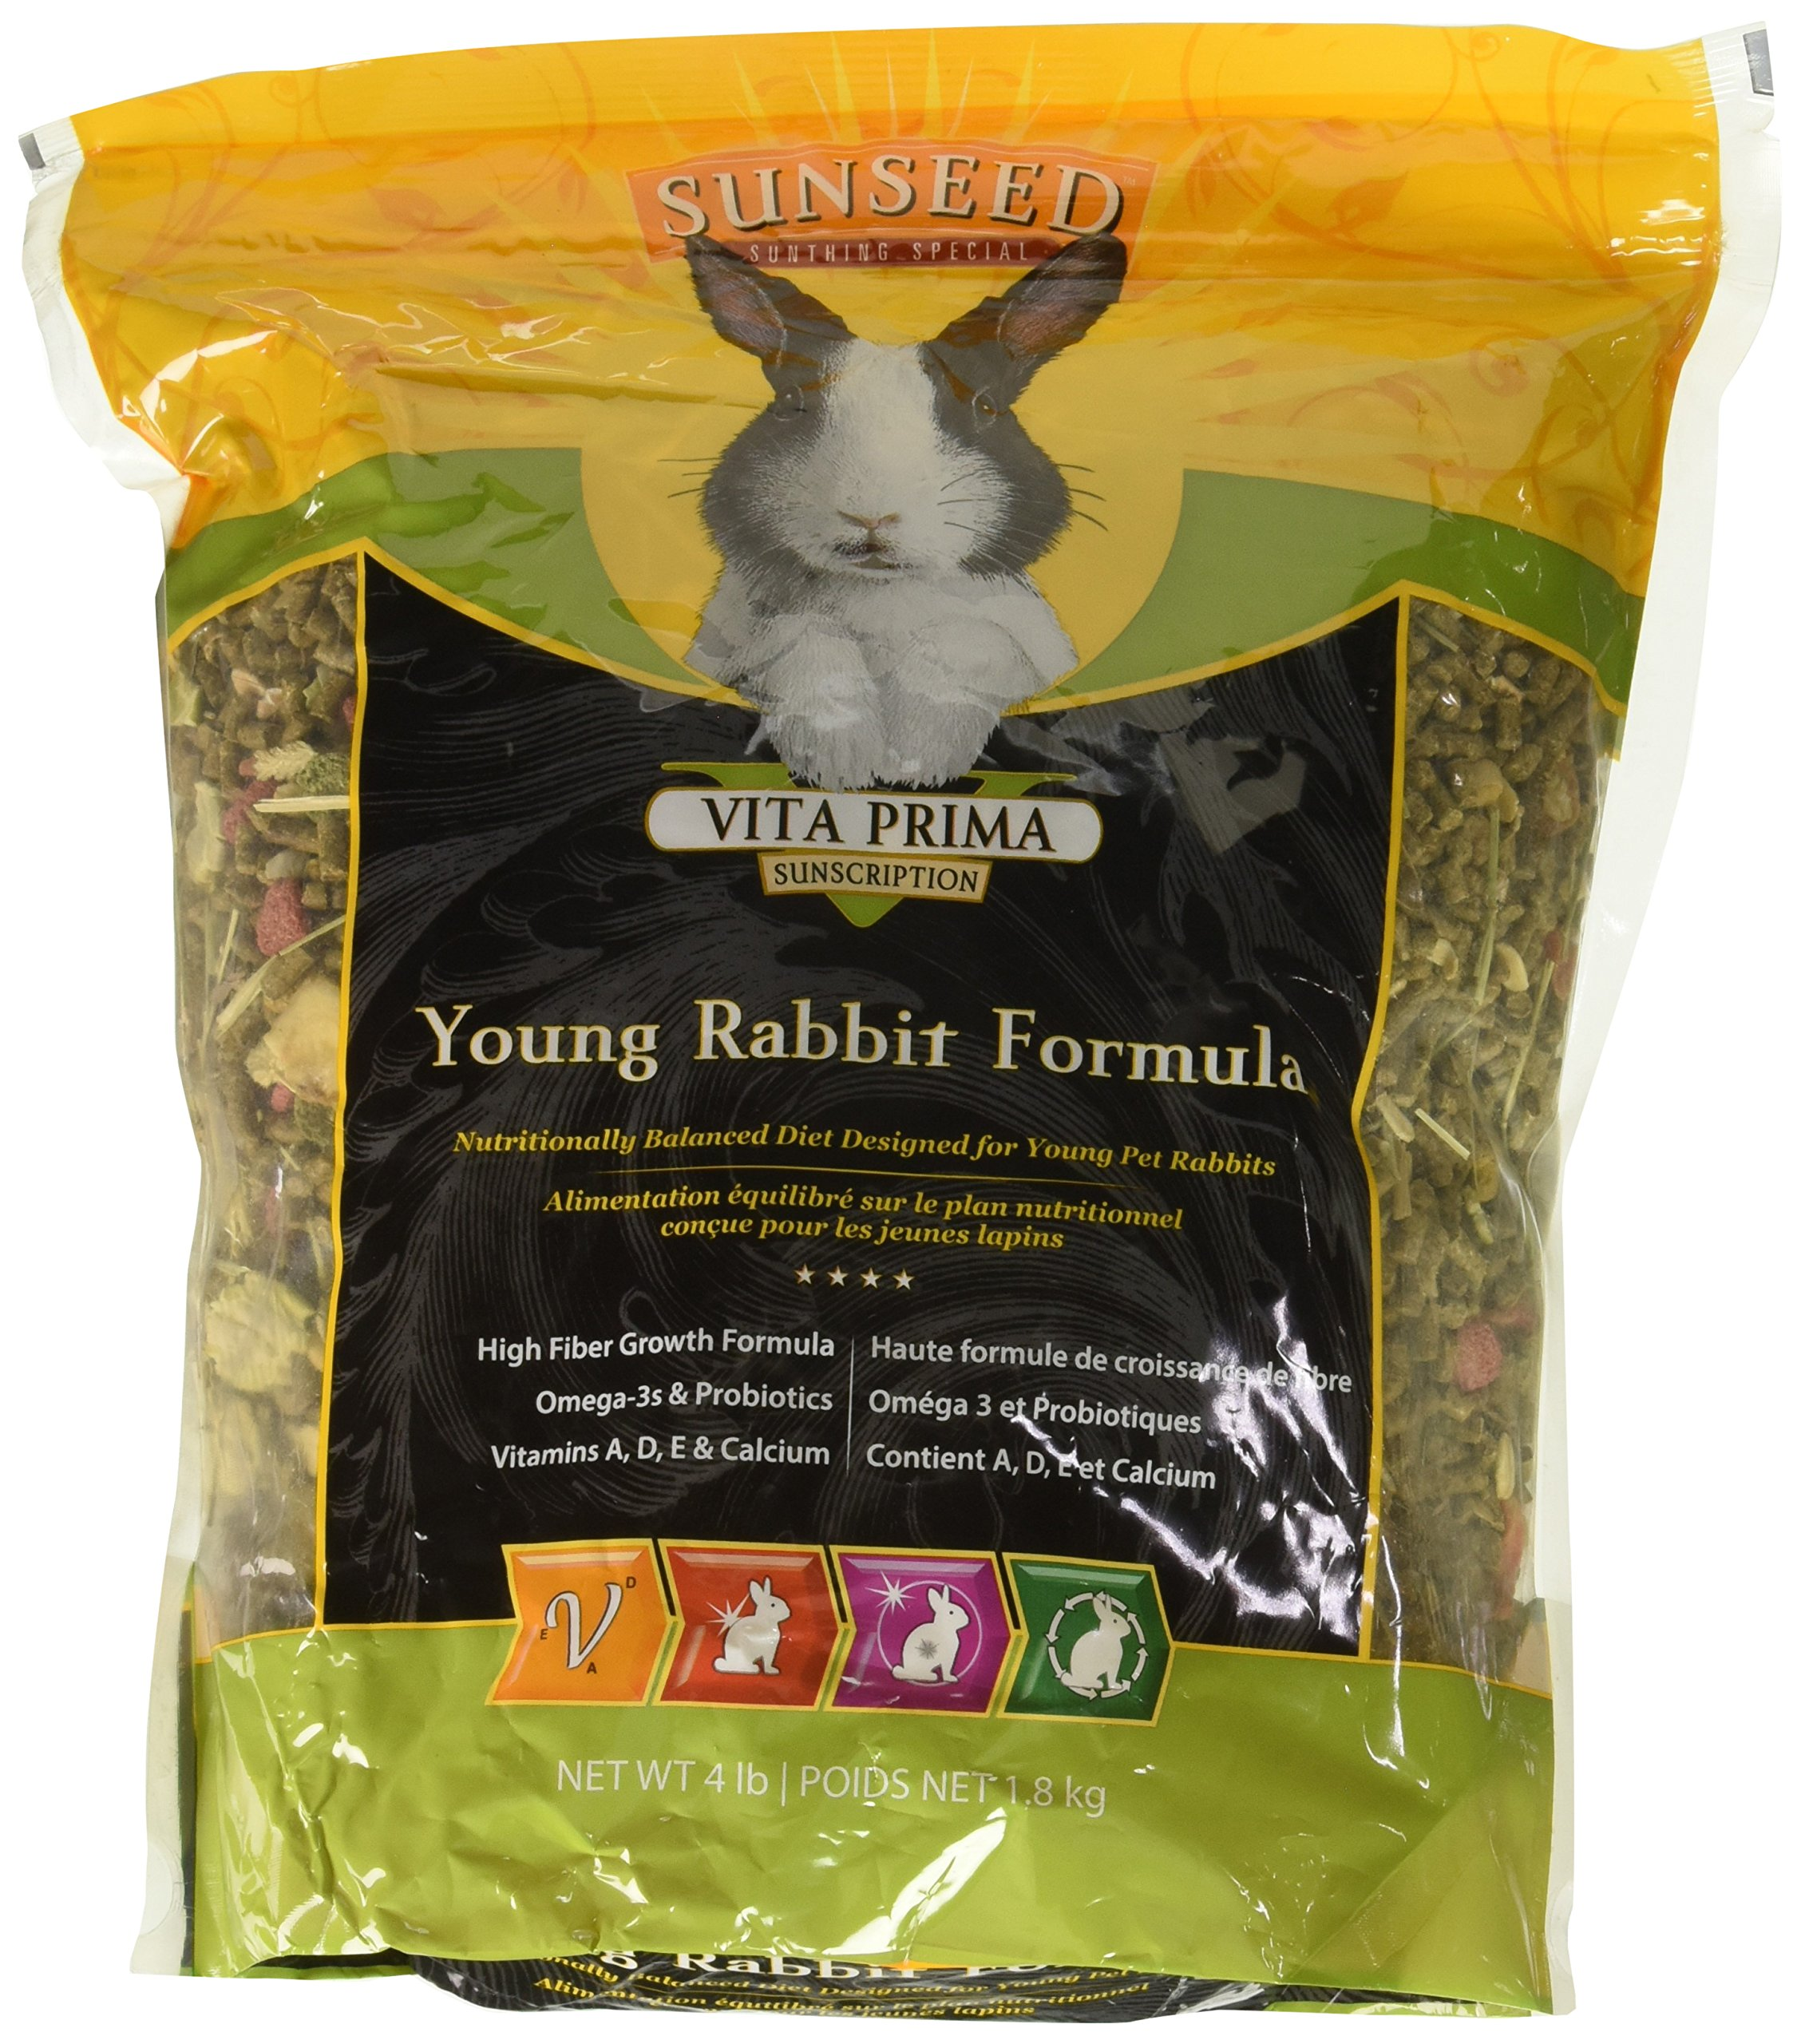 (3 Pack) Sunseed Vita Prima Sunscription Young Rabbit Formula, 4 Lb each by Sun Seed